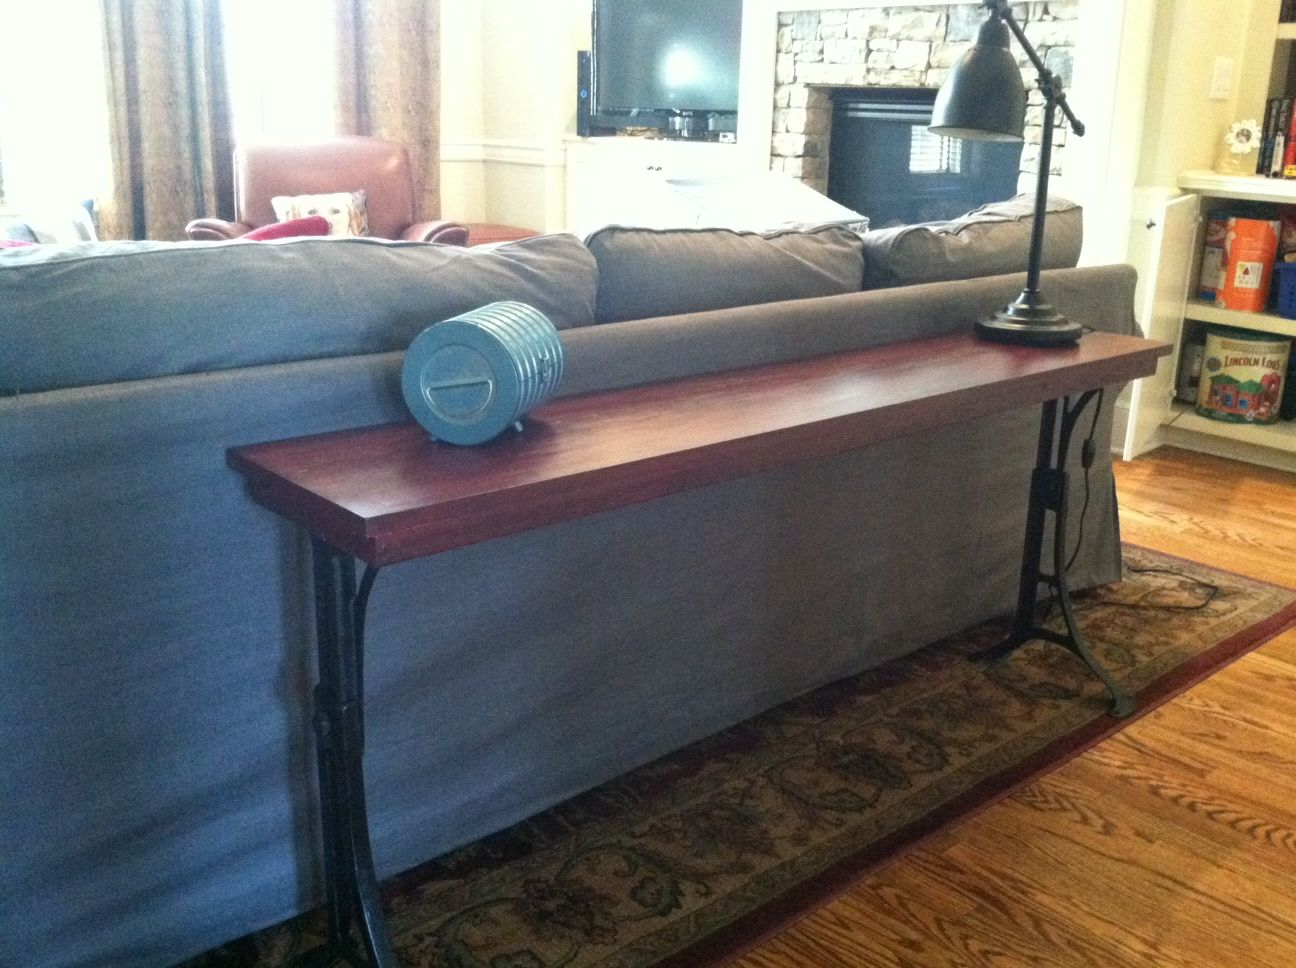 DIY Console Table legs=industrial cast iron legs from